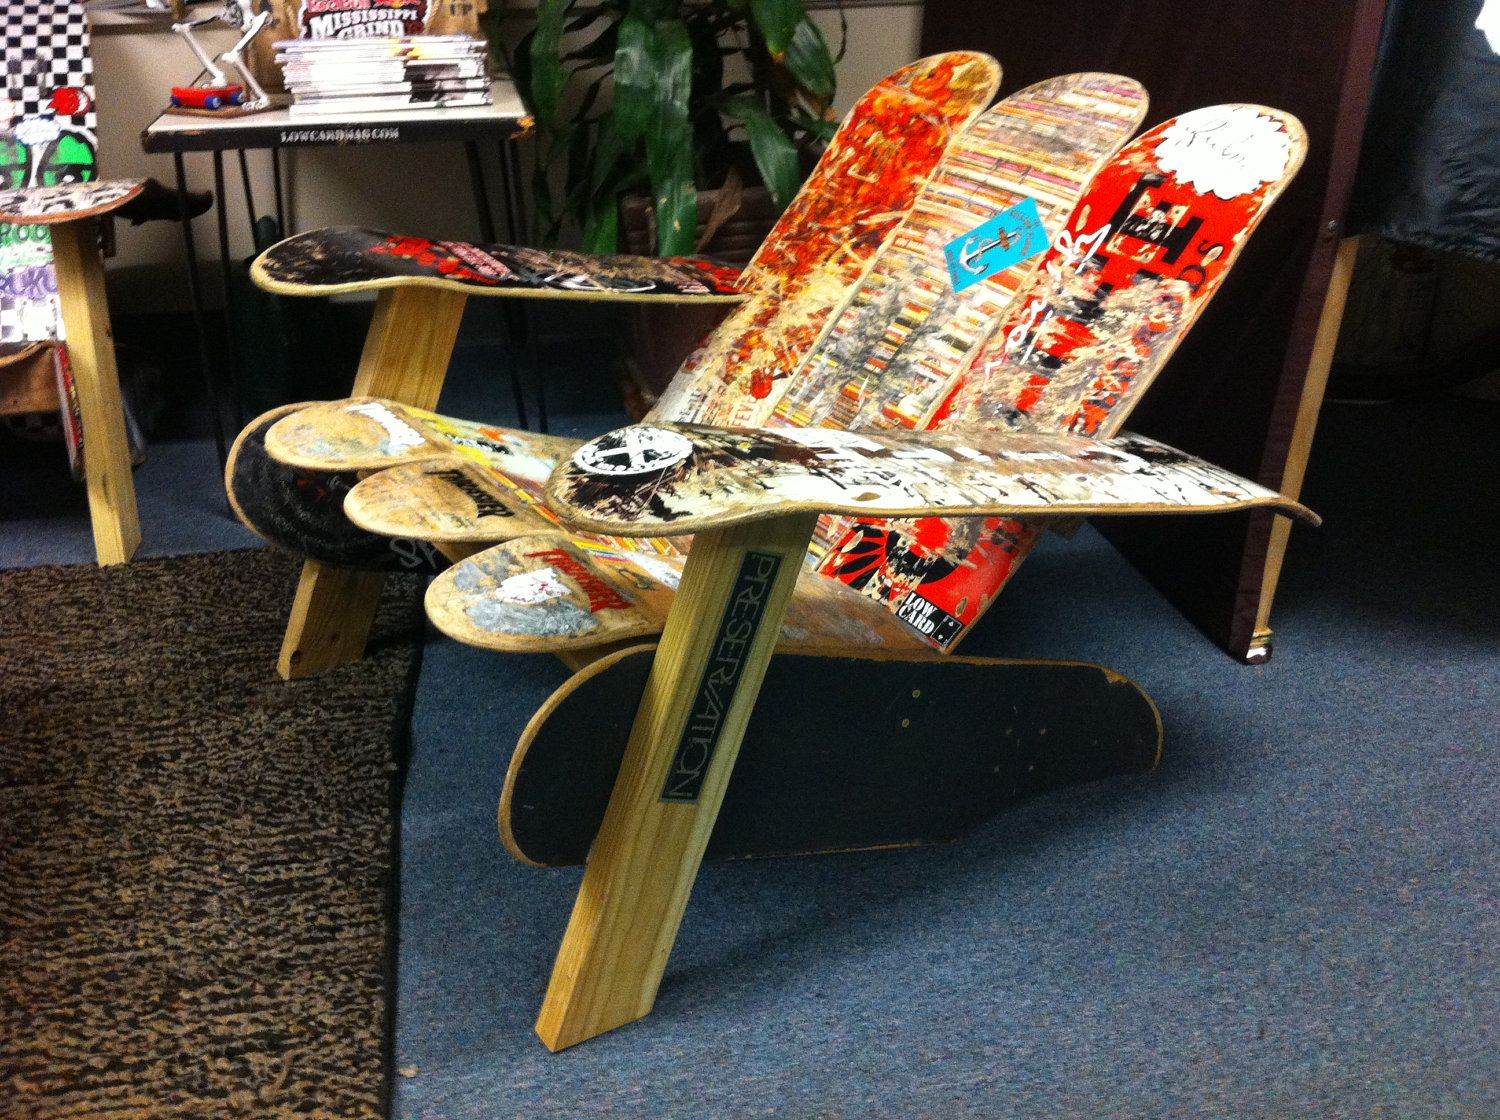 I've had the idea to make an Adirondack chair out of old skateboards since